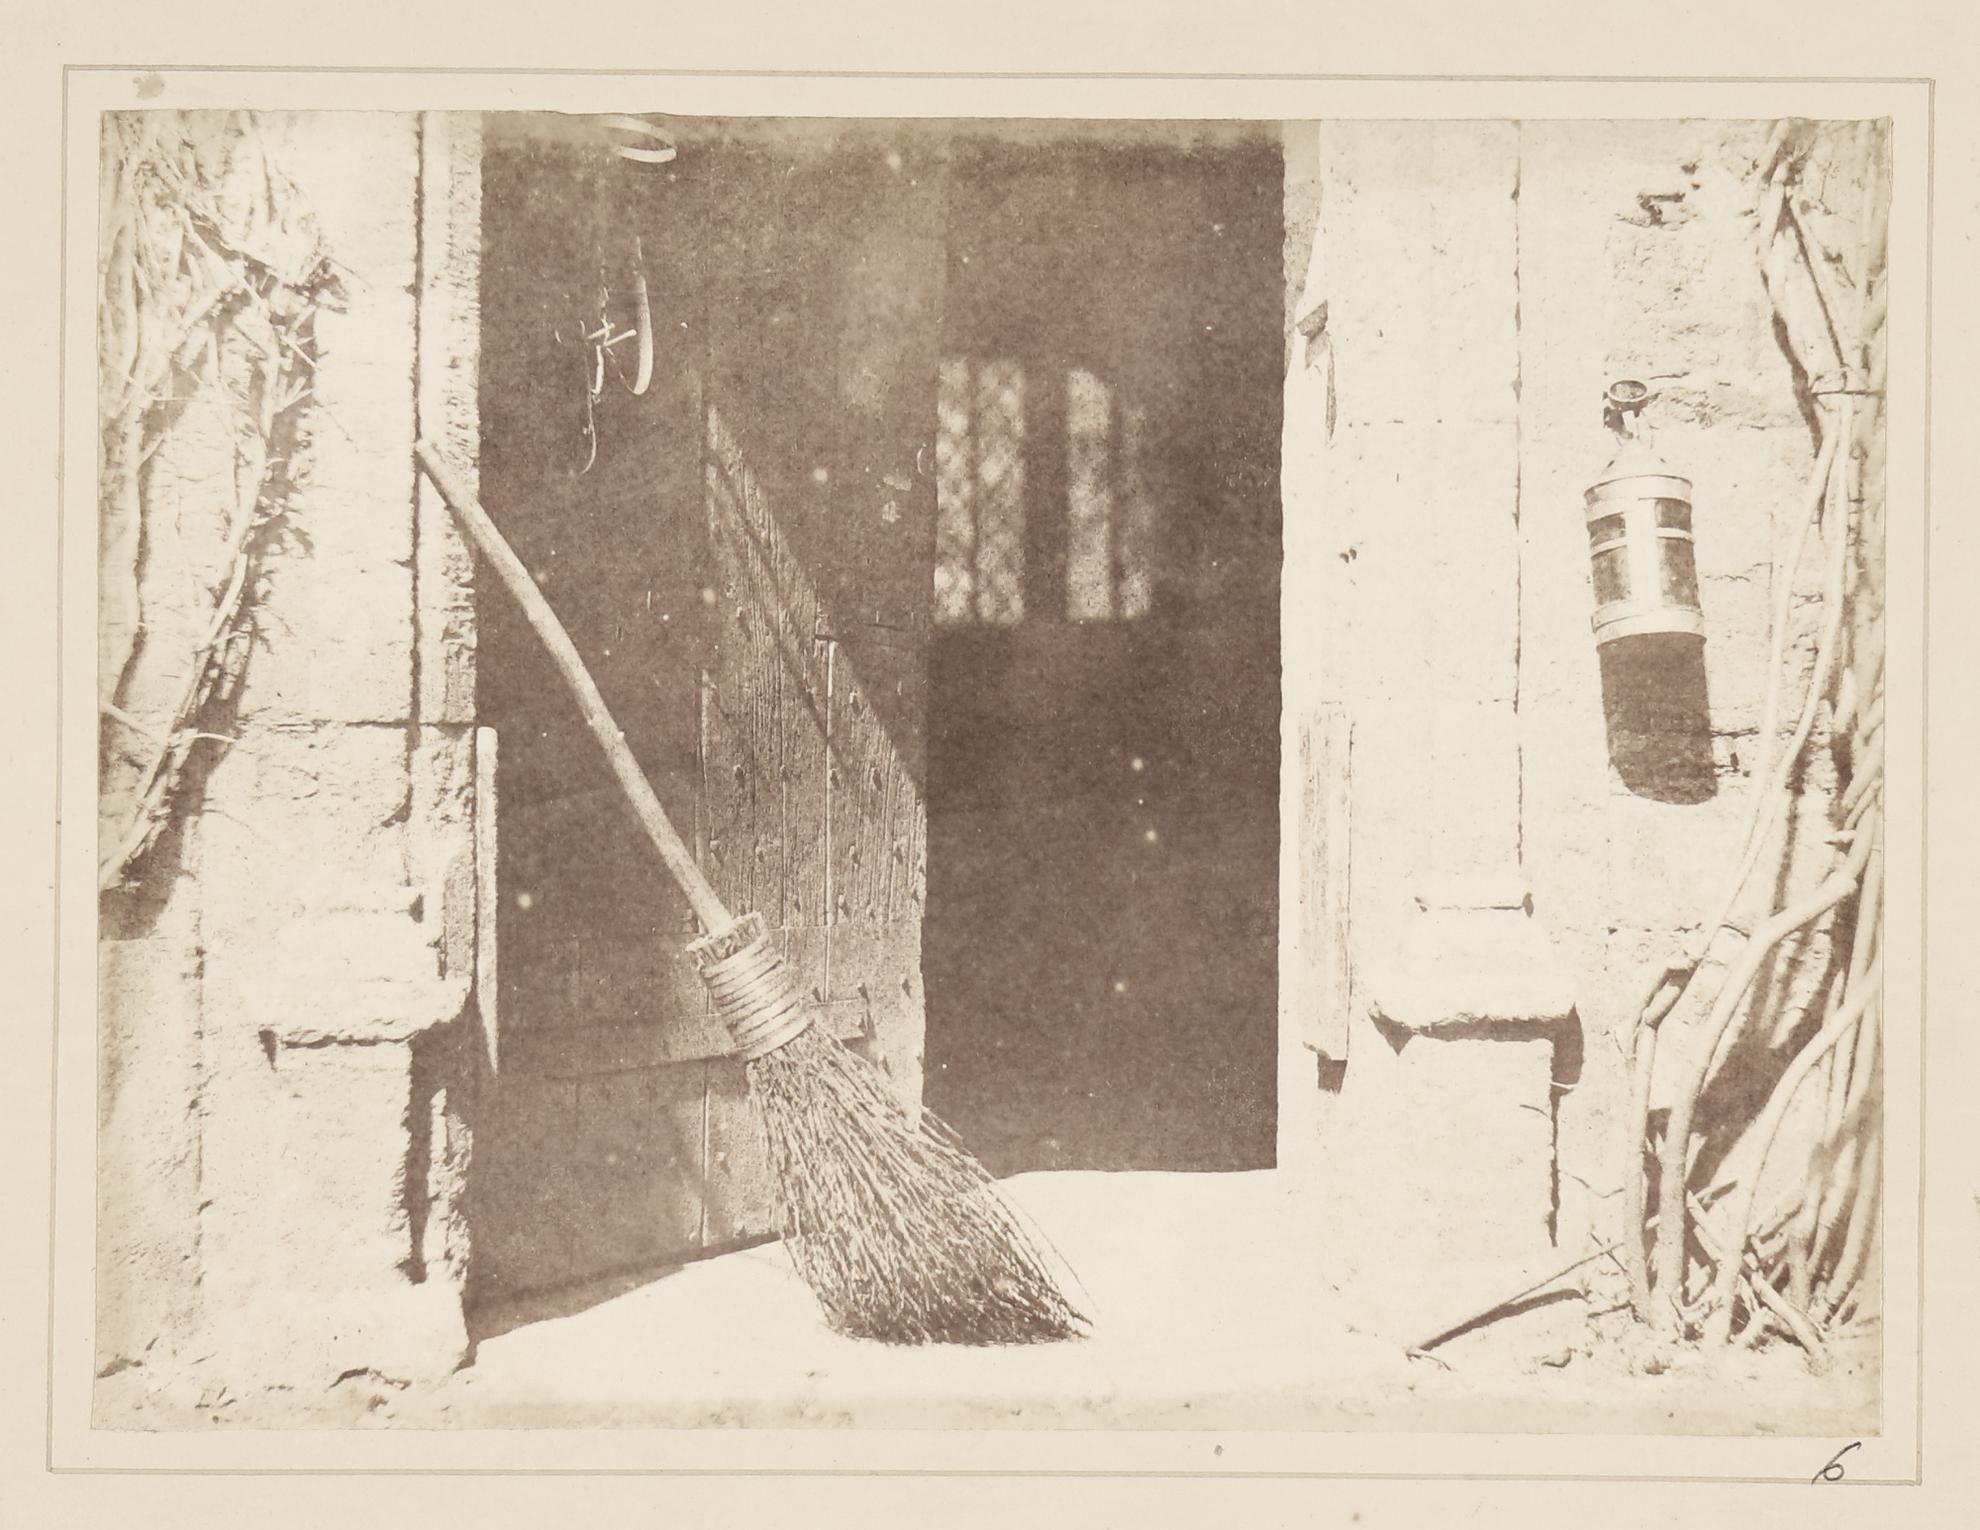 William Henry Fox Talbot-The Pencil Of Nature-1846